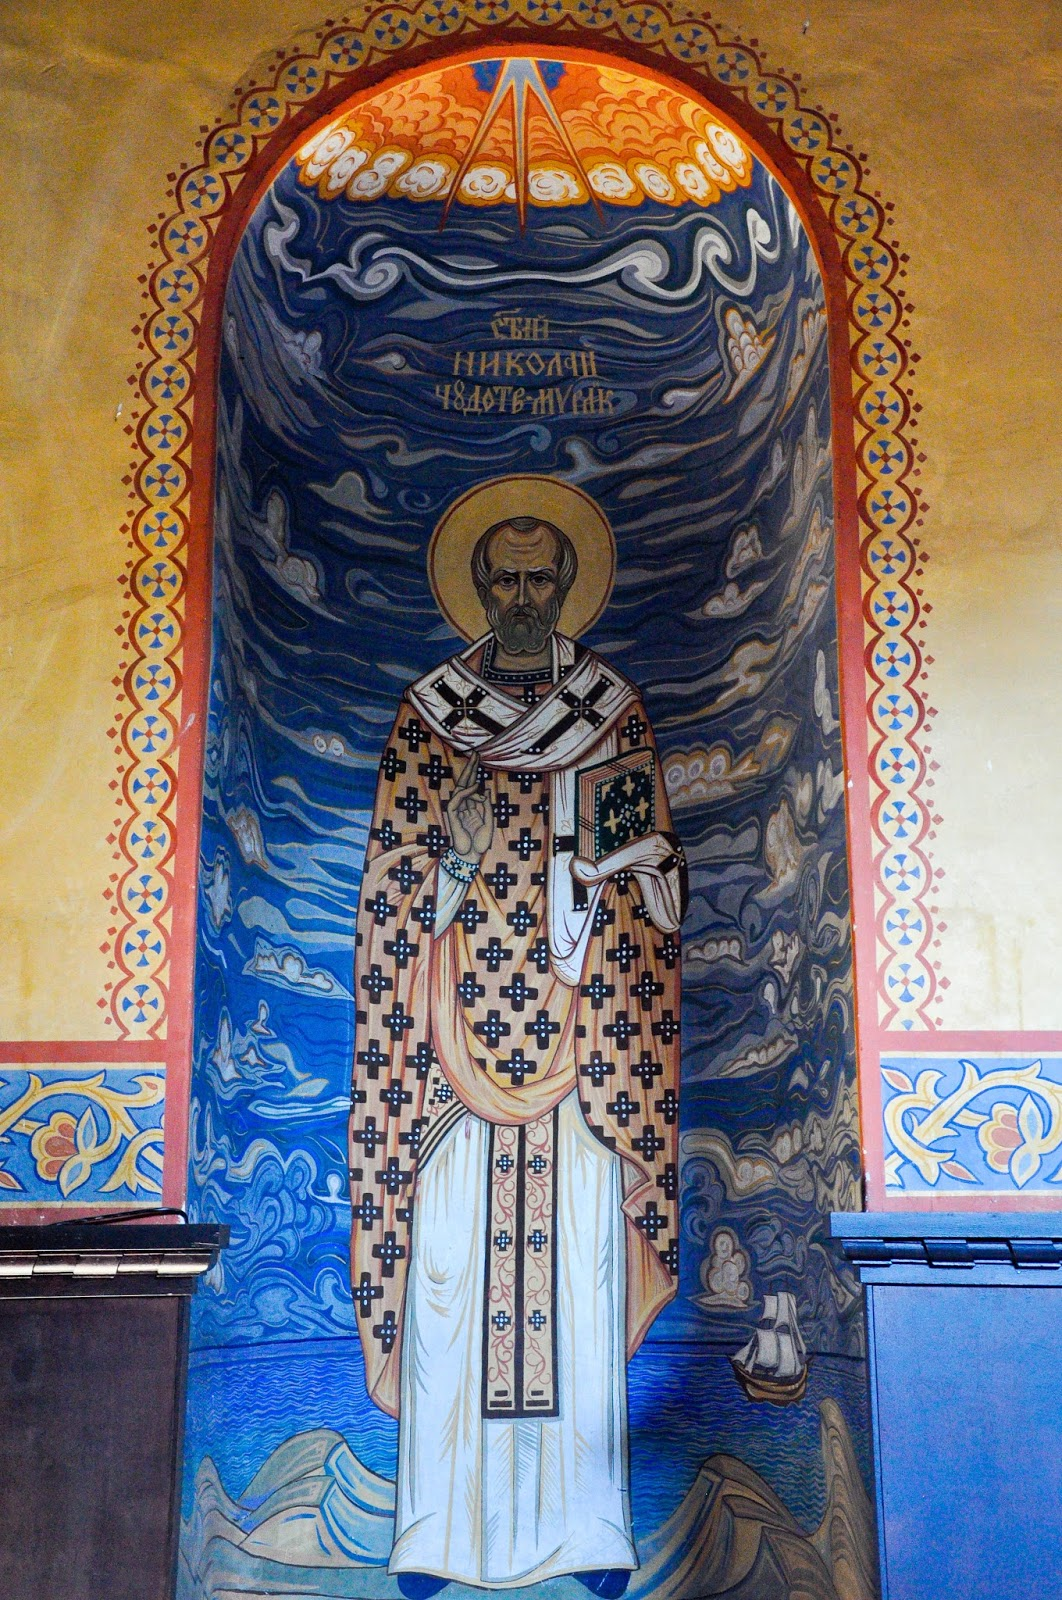 St. Nicholas The Wonderworker, Dormition of the Mother of God Cathedral, Varna